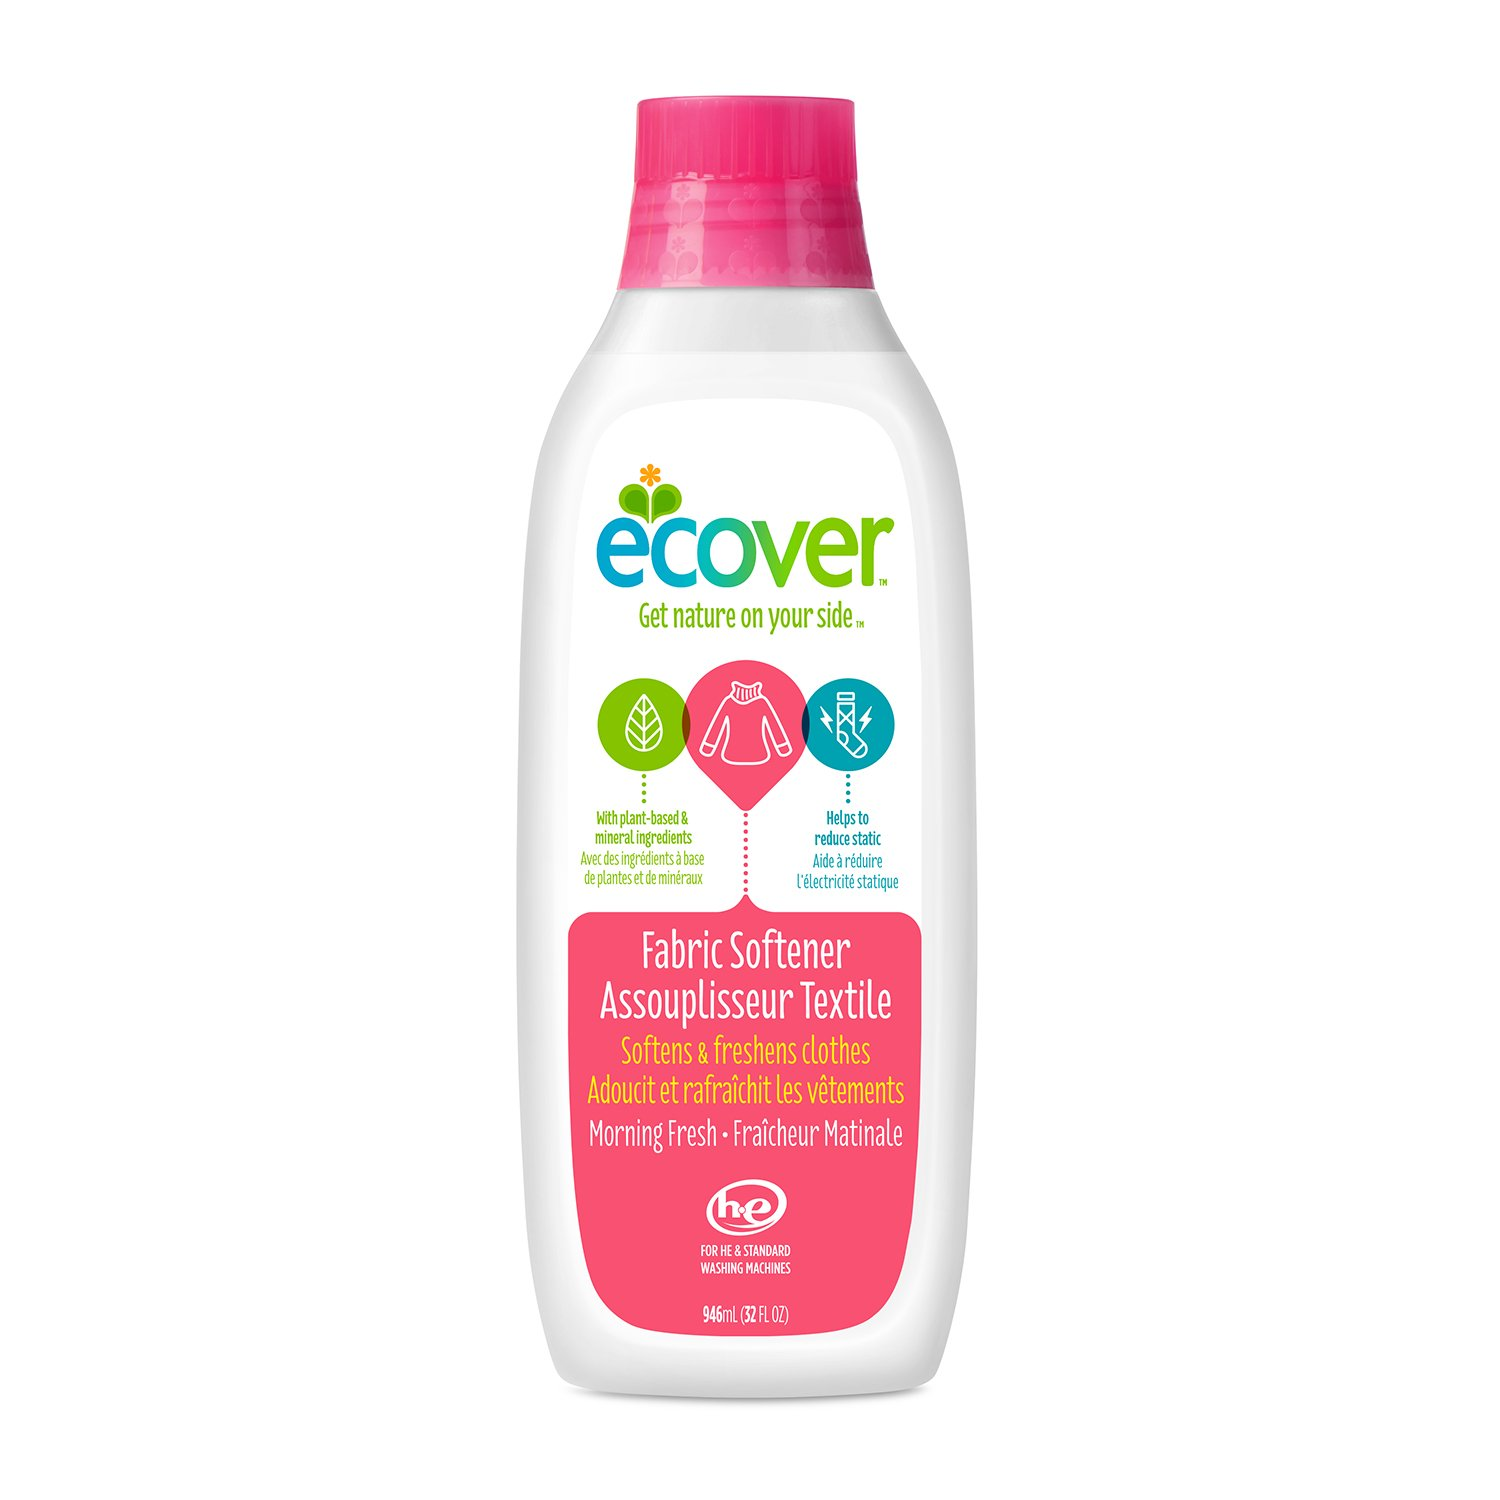 Amazon Ecover Fabric Softener 32 Ounce Bottle Pack of 6